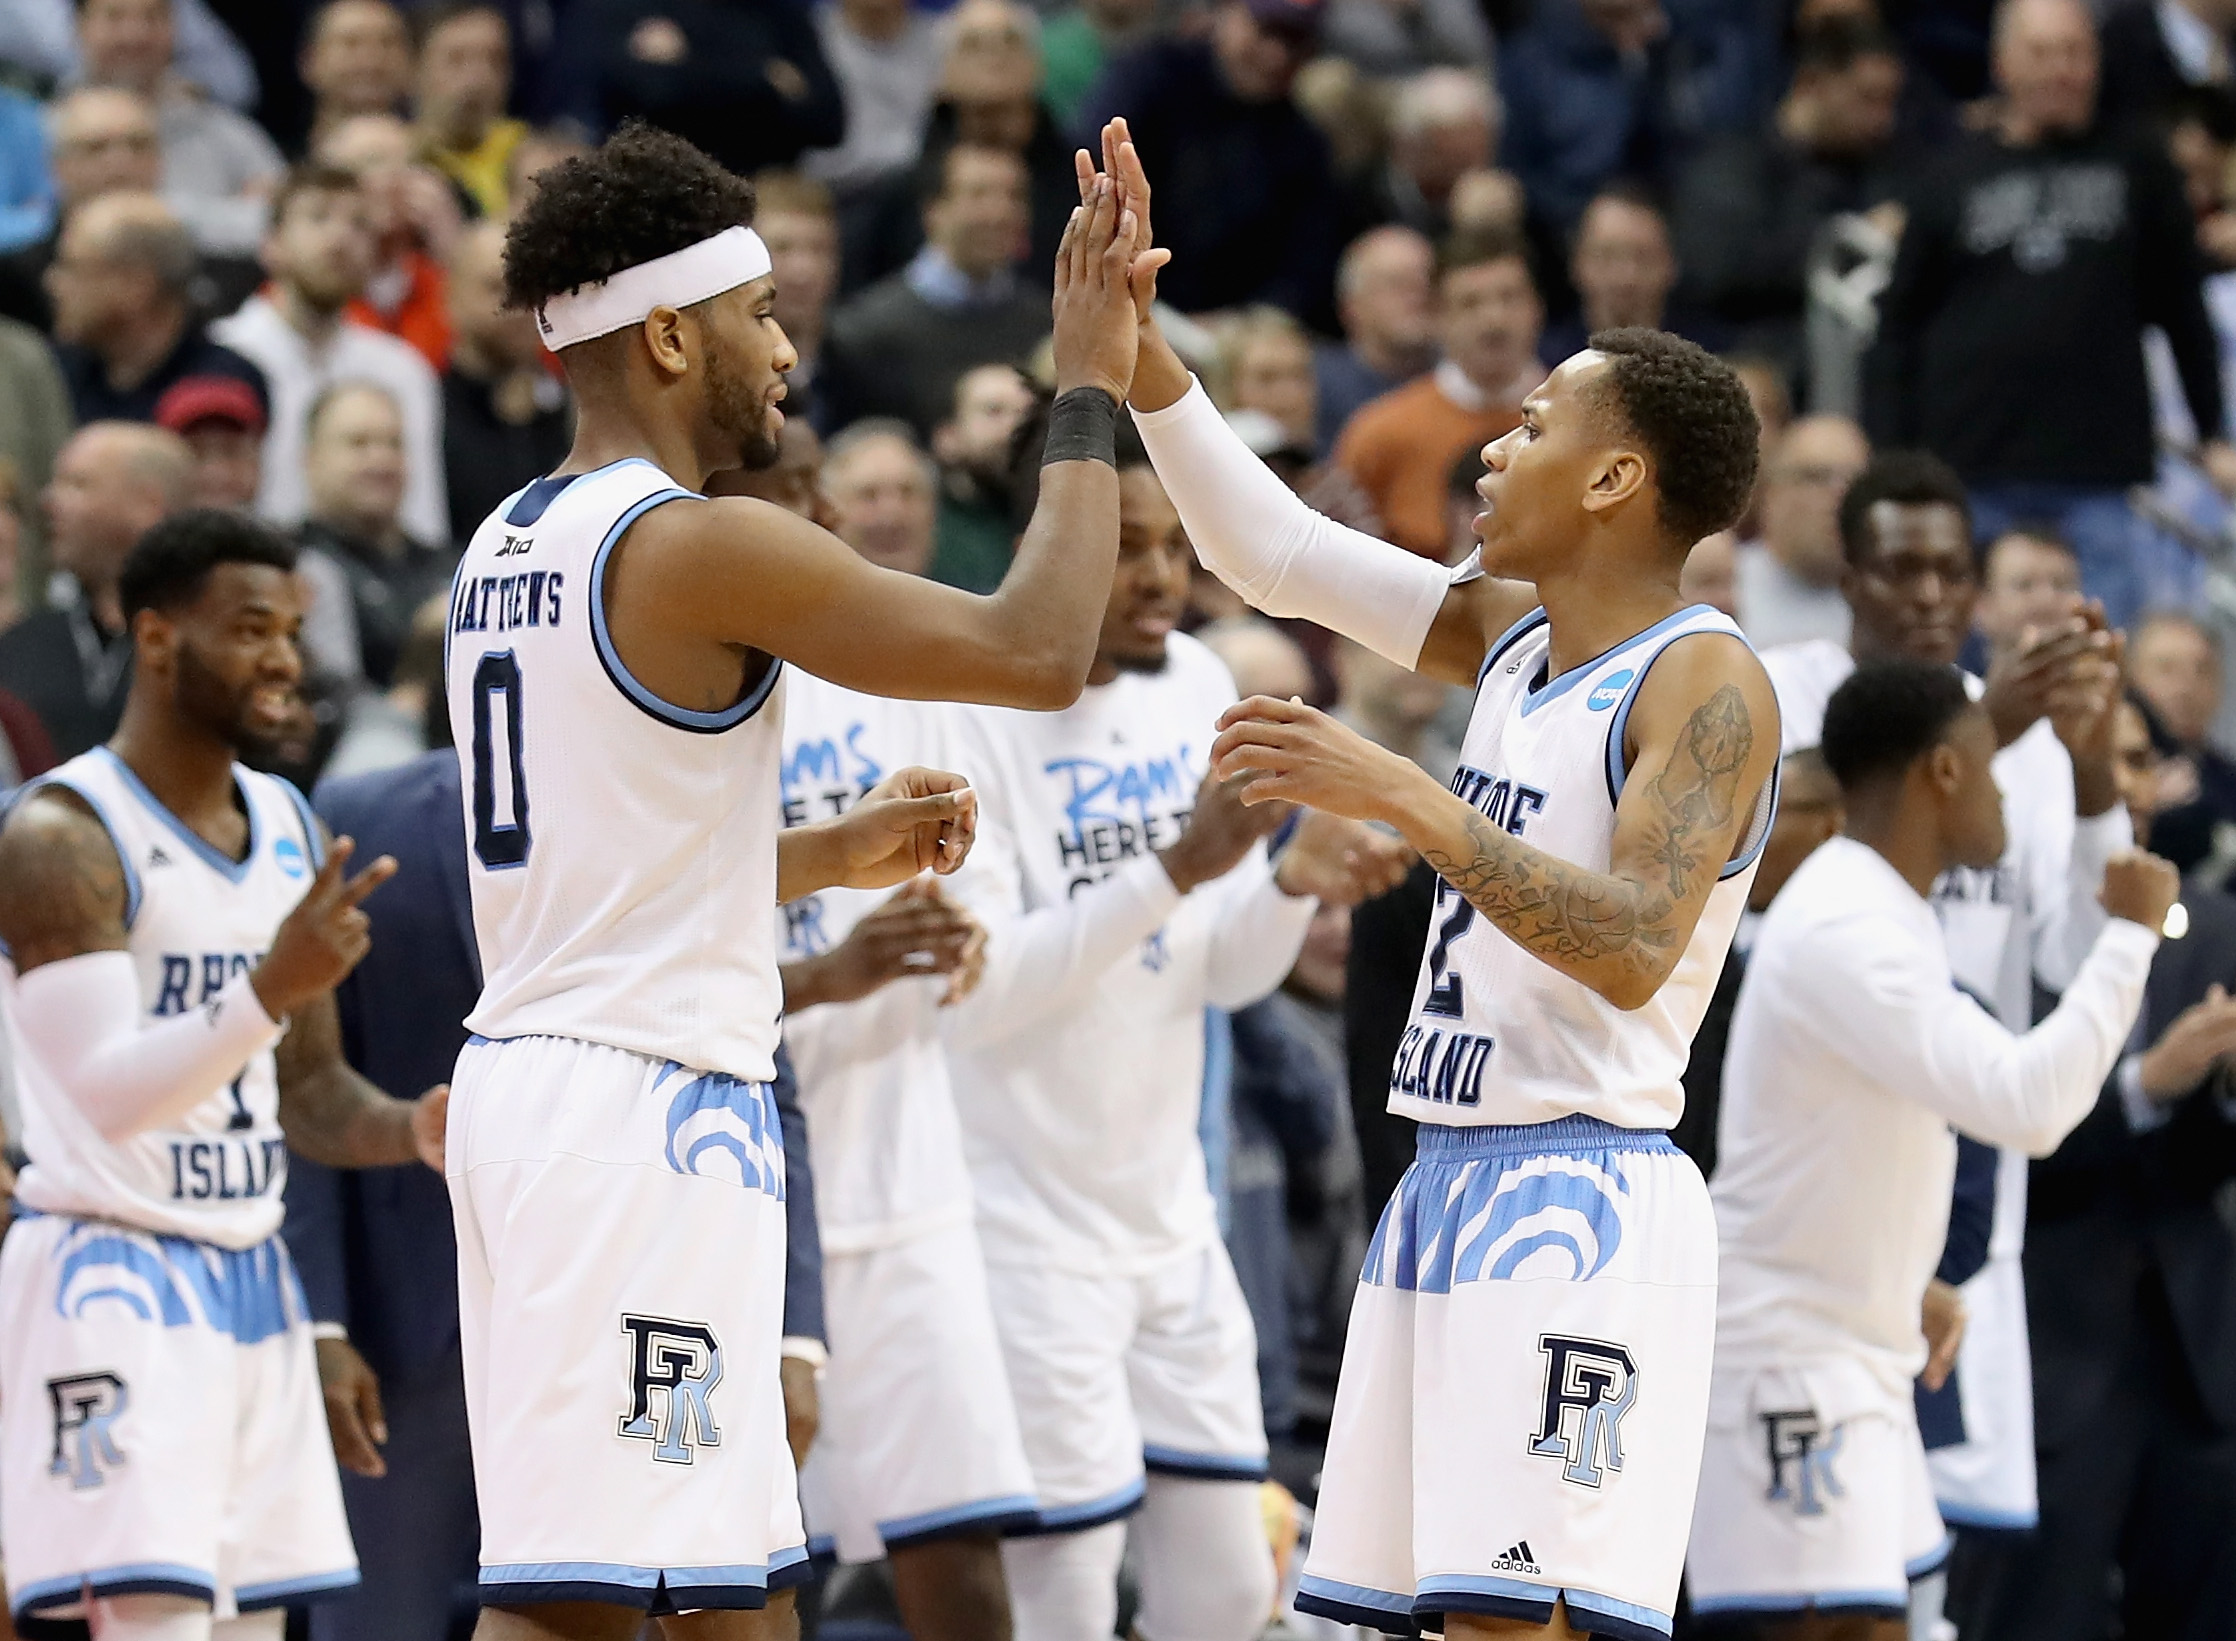 NCAA Tournament Second Round: Duke Blue Devils vs. Rhode Island Rams